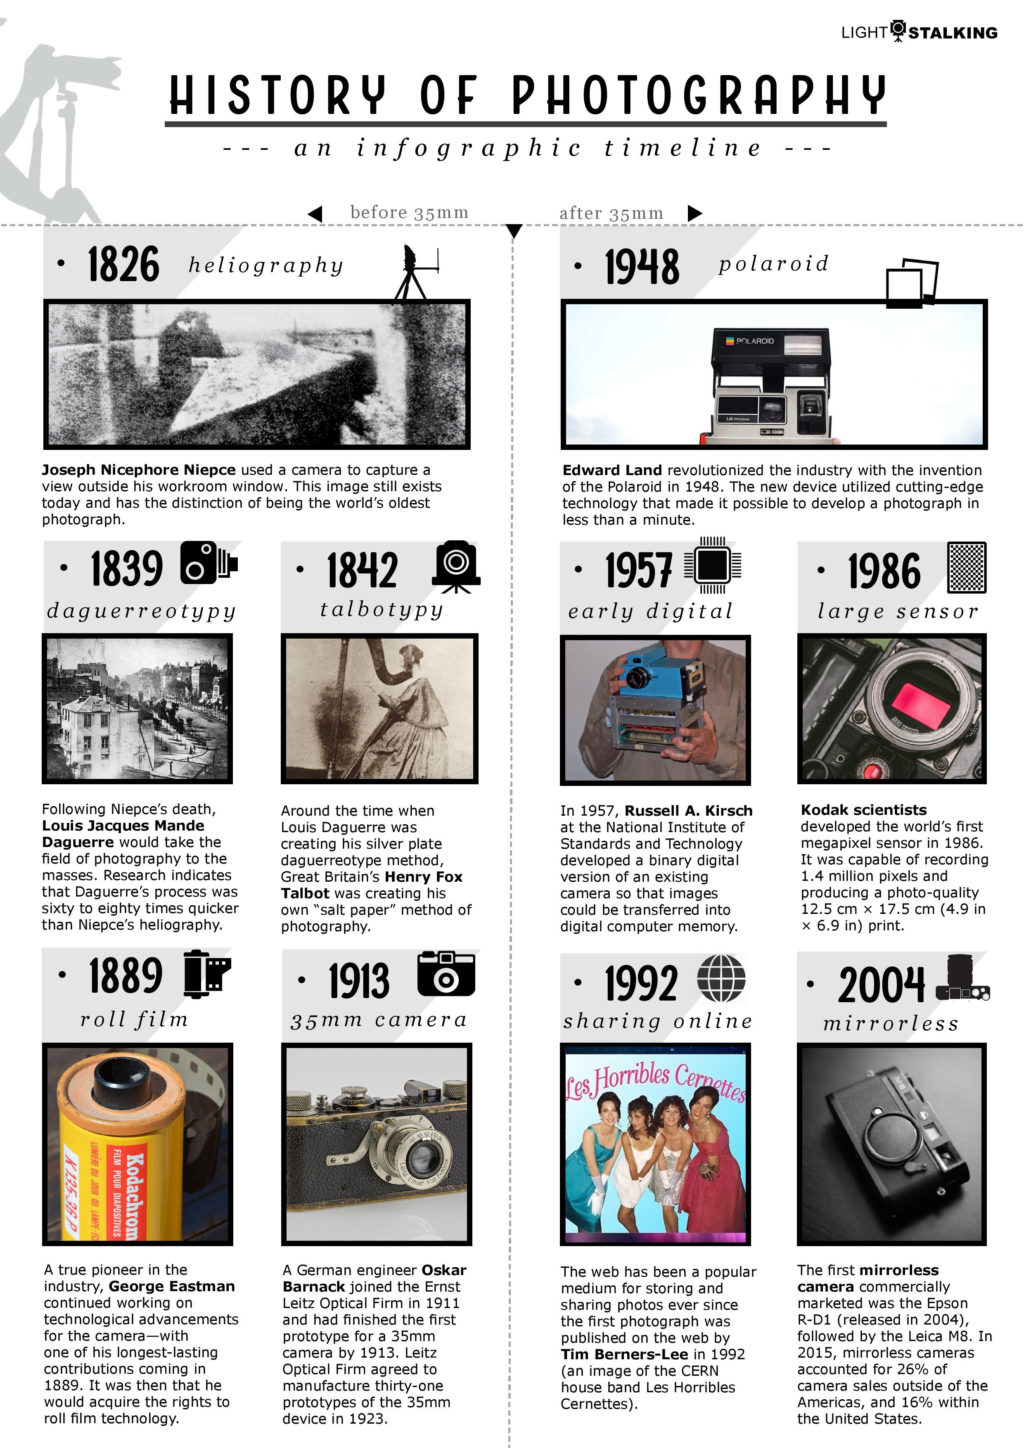 history of photography timeline infographic